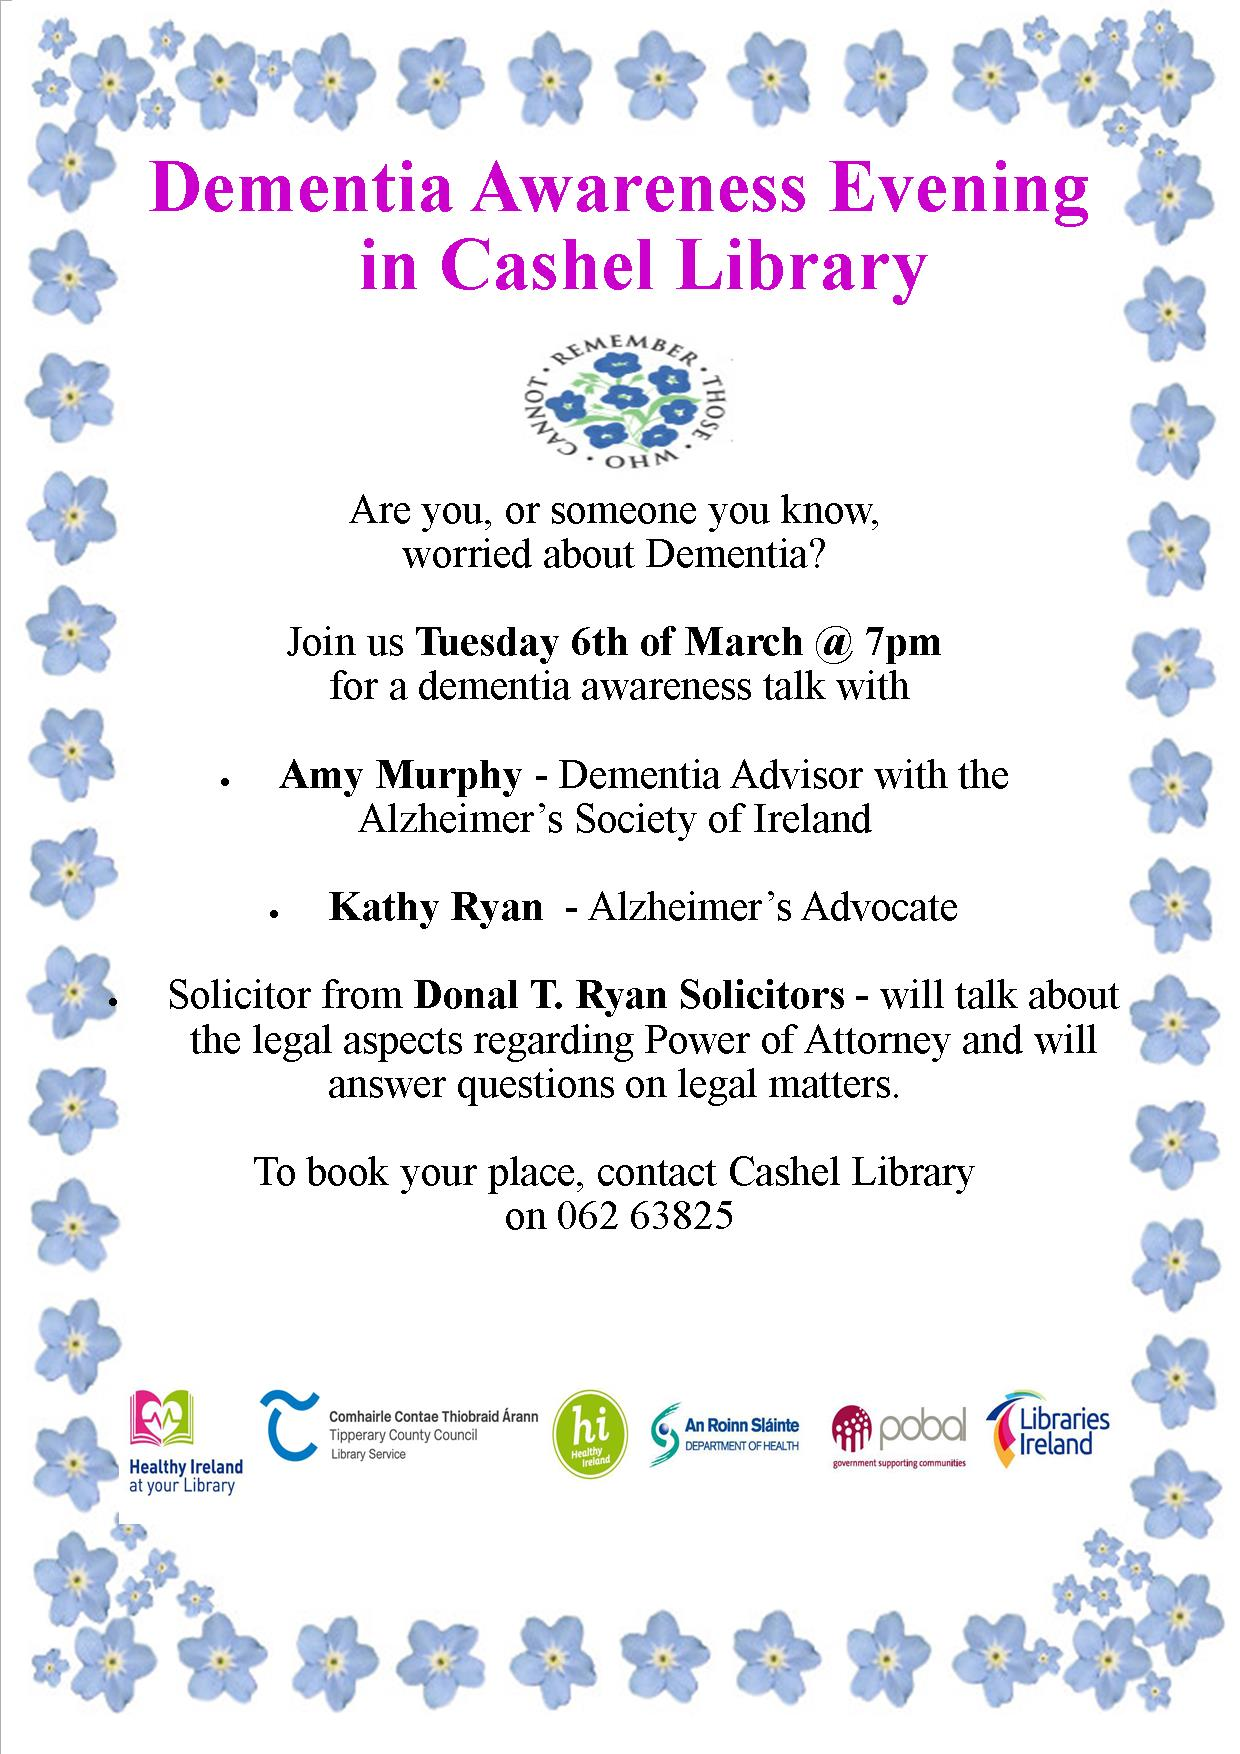 Dementia Awareness Evening in Cashel Library